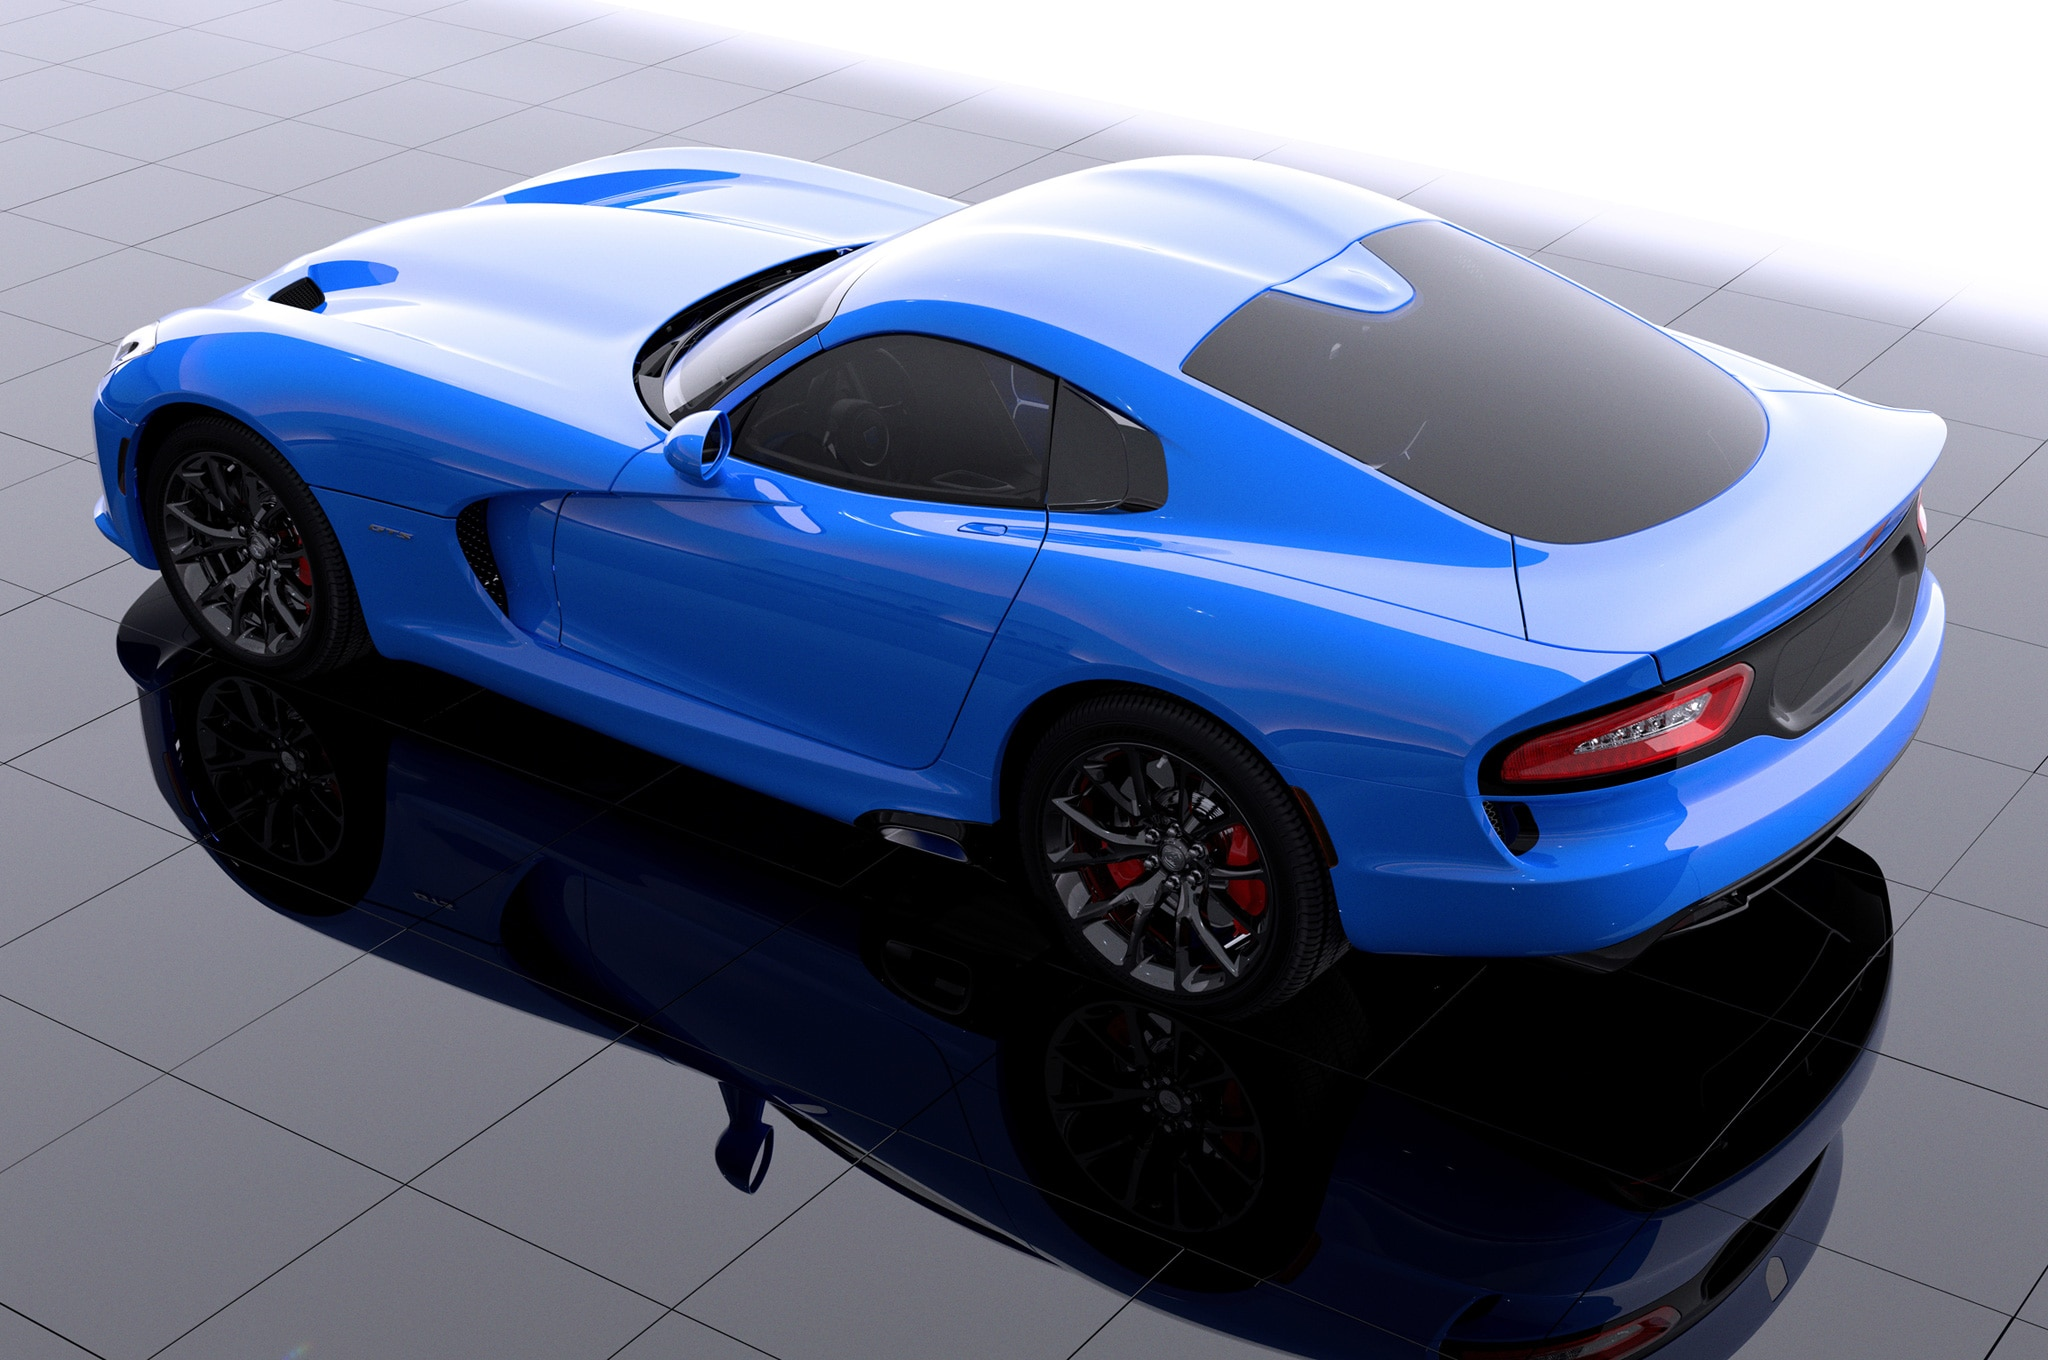 2014 SRT Viper GTS In New Blue Color Rear View1